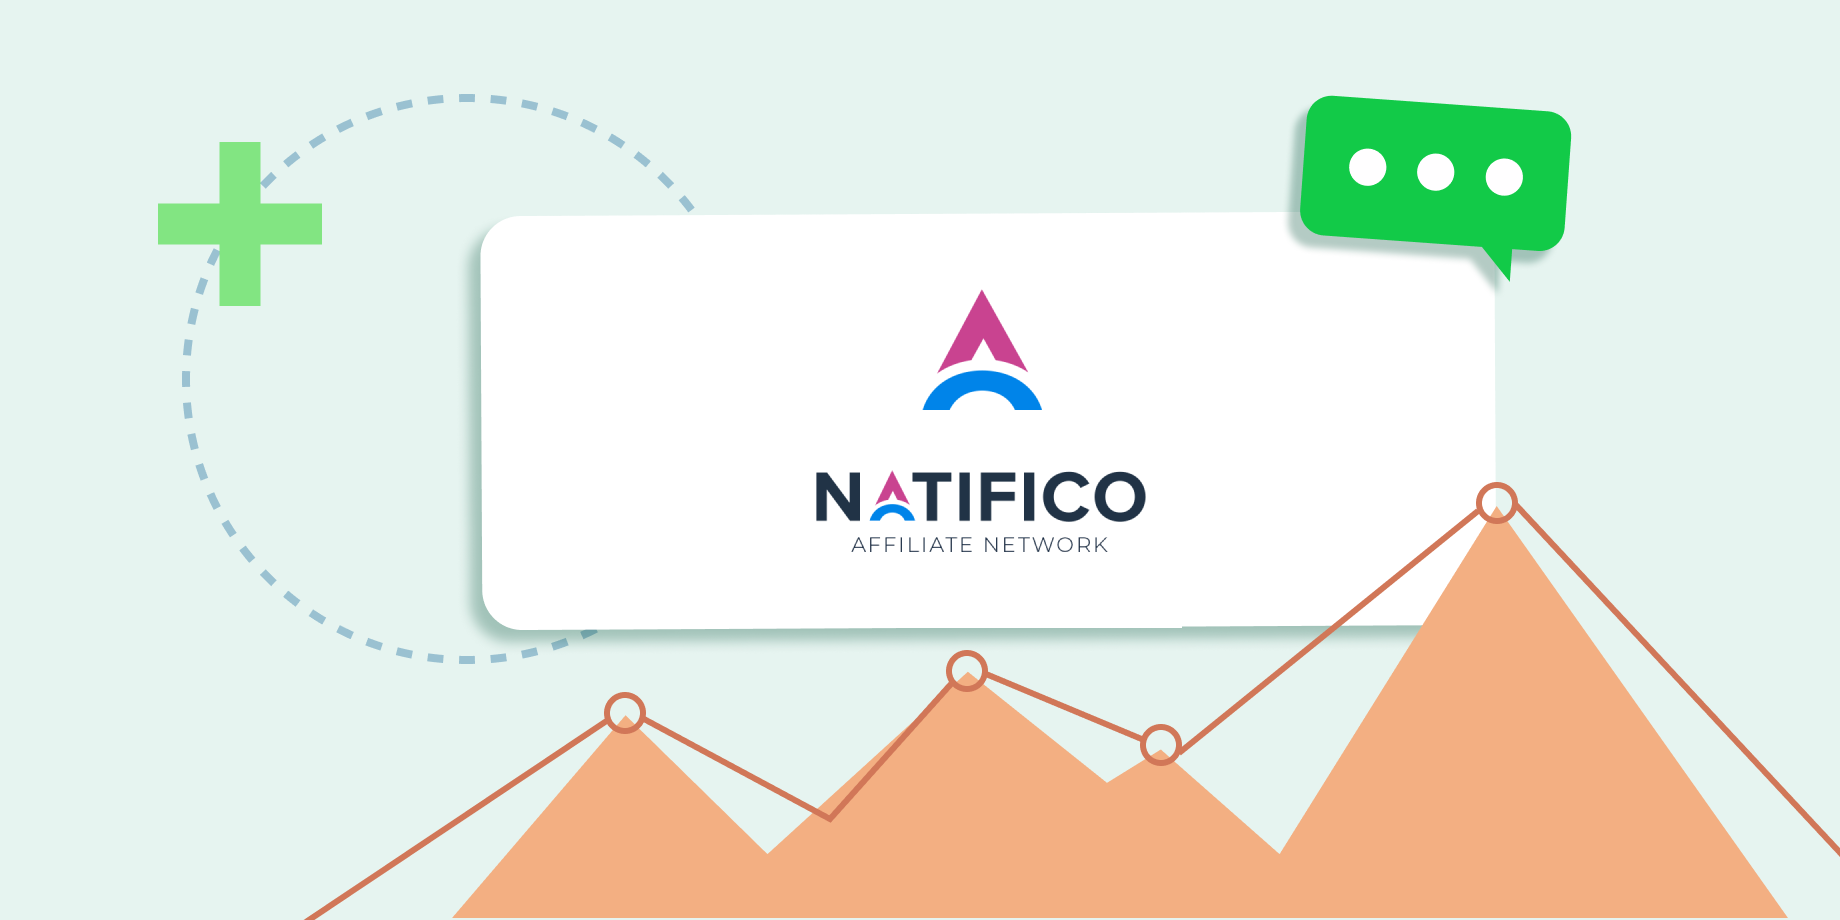 Meet our trusted partner Natifico!